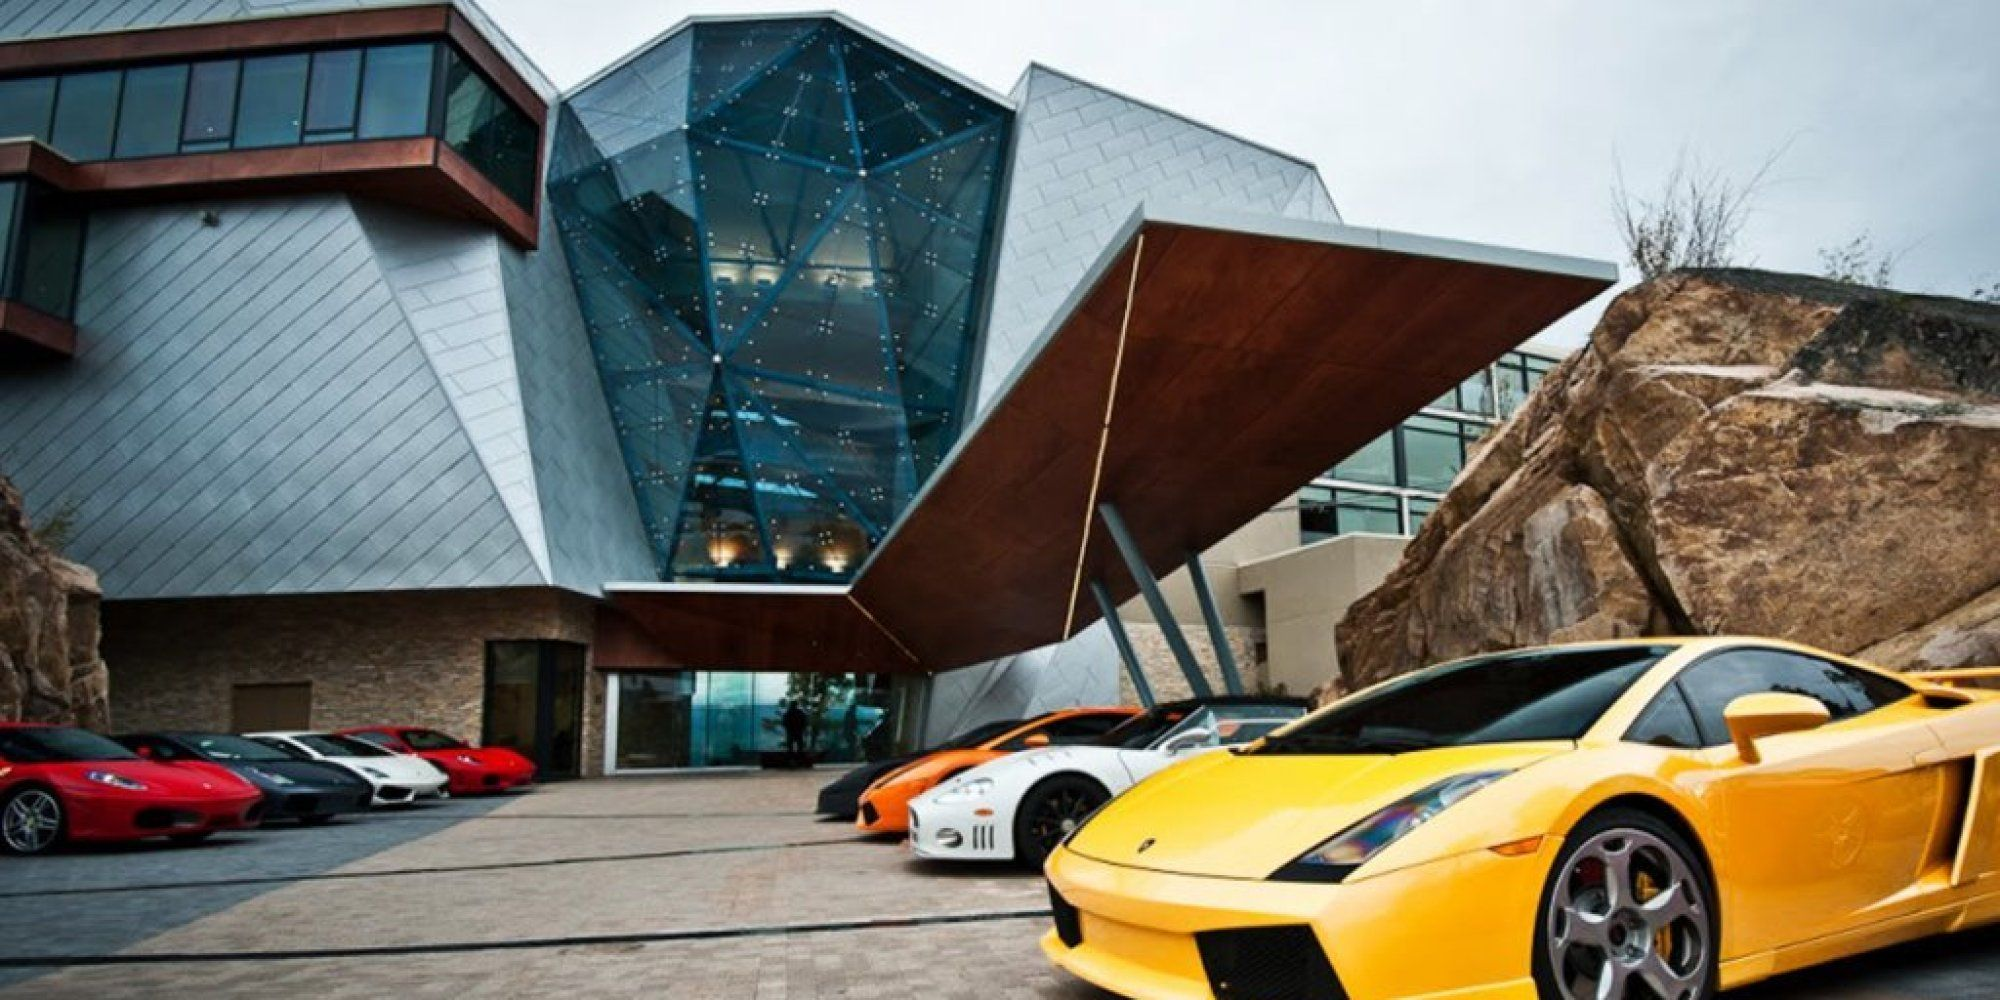 Luxury House And Car superjealous | luxury cars | pinterest | luxury cars and cars